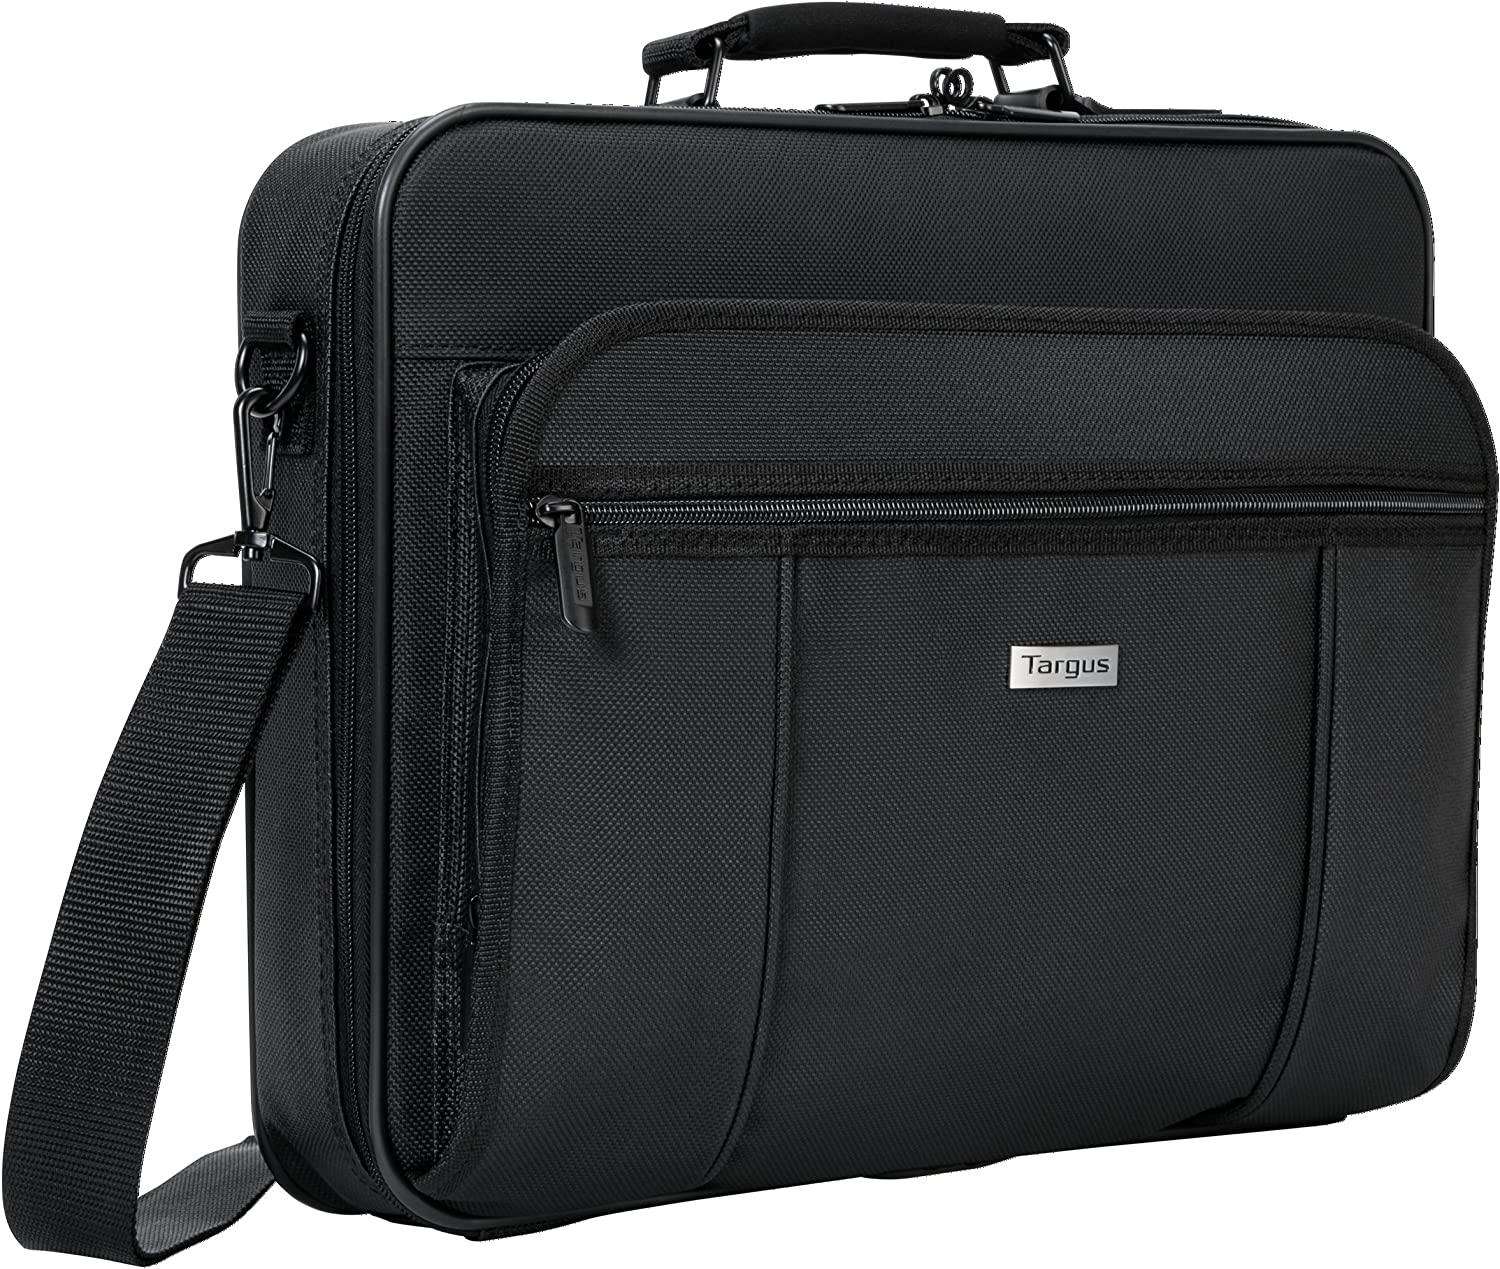 Targus Premiere Laptop Case, Protective Business Travel Design with Front Pocket, Removable Shoulder Strap, File Section, Trolley Strap, Padded Sleeve fits 15.4-Inch Laptop, Black (TVR300)